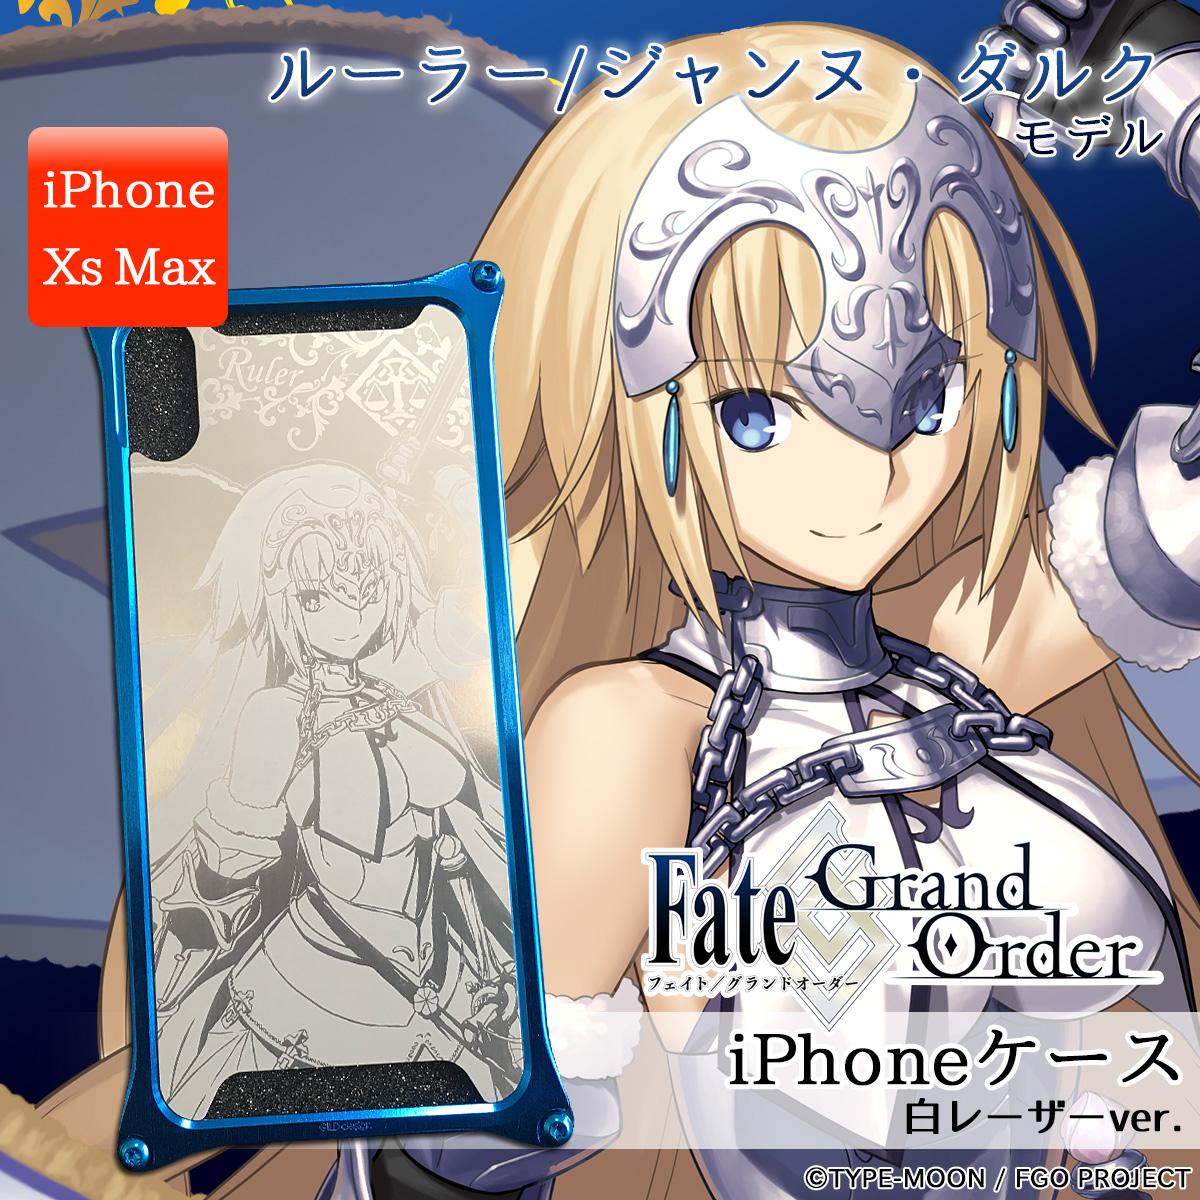 『Fate/Grand Order』×『GILD design』iPhoneXsMaxケース ルーラー/ジャンヌ・ダルク 白レーザーver.